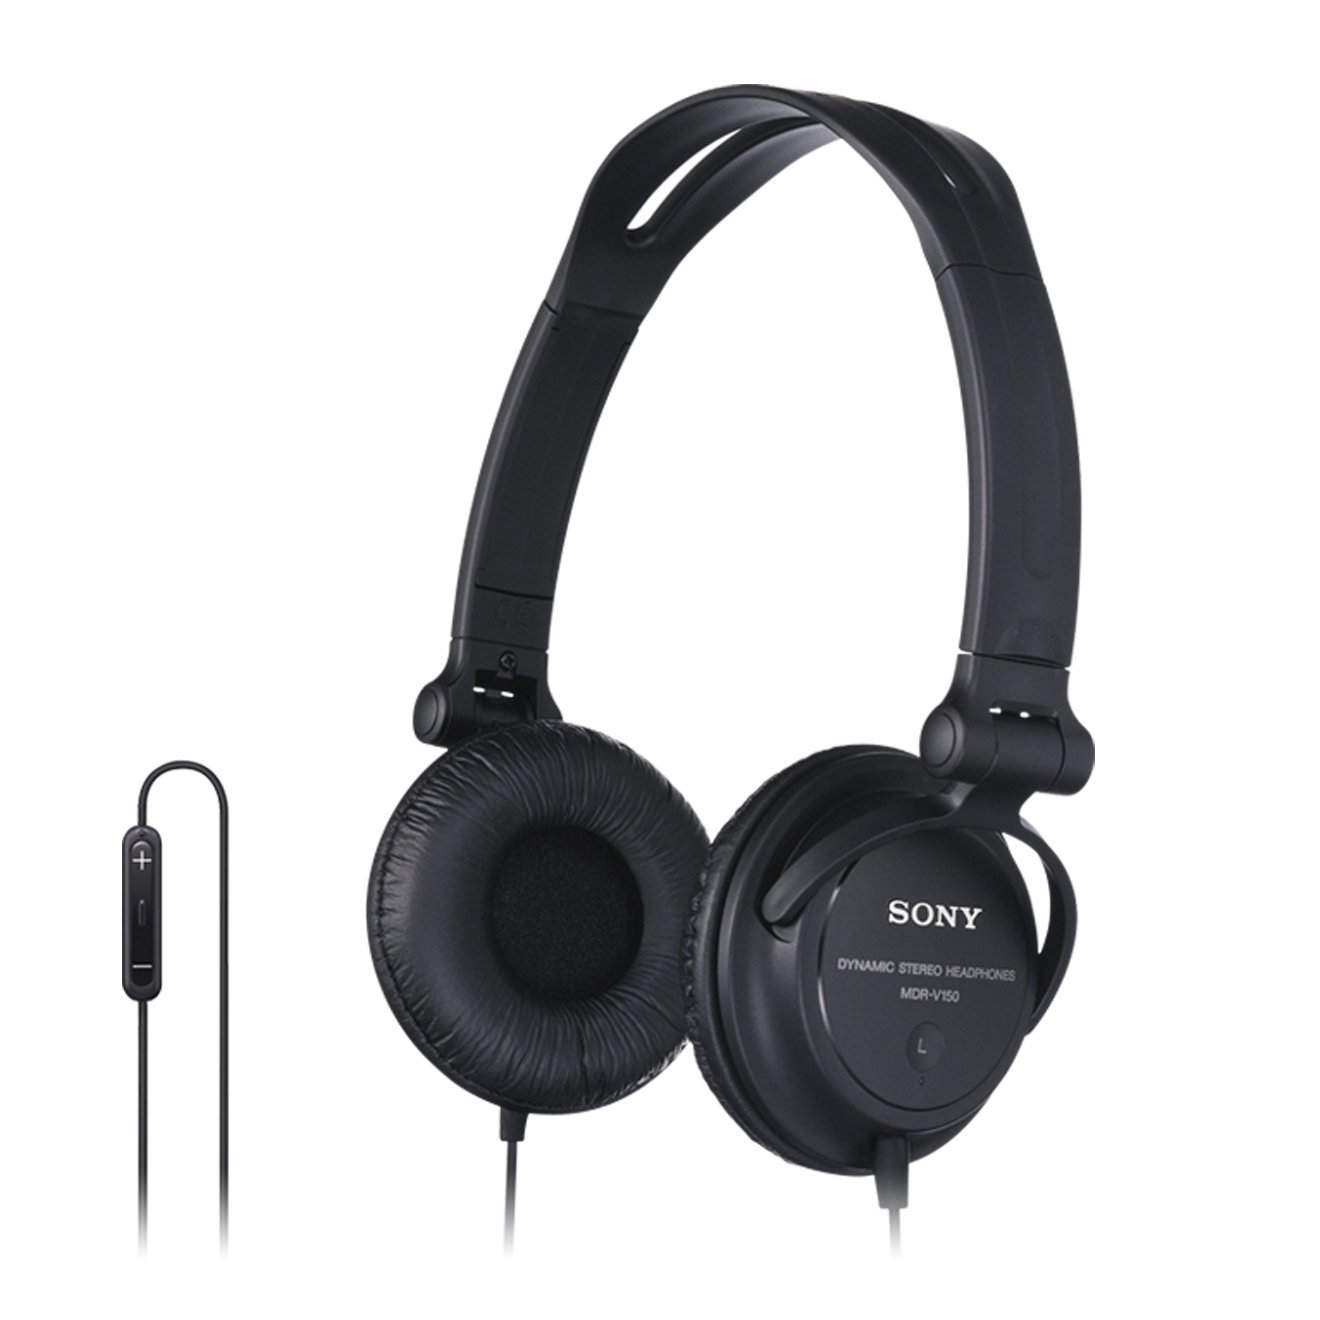 new sony mdr v150ip dj headphones with mic remote control for ipod iphone ipad ebay. Black Bedroom Furniture Sets. Home Design Ideas